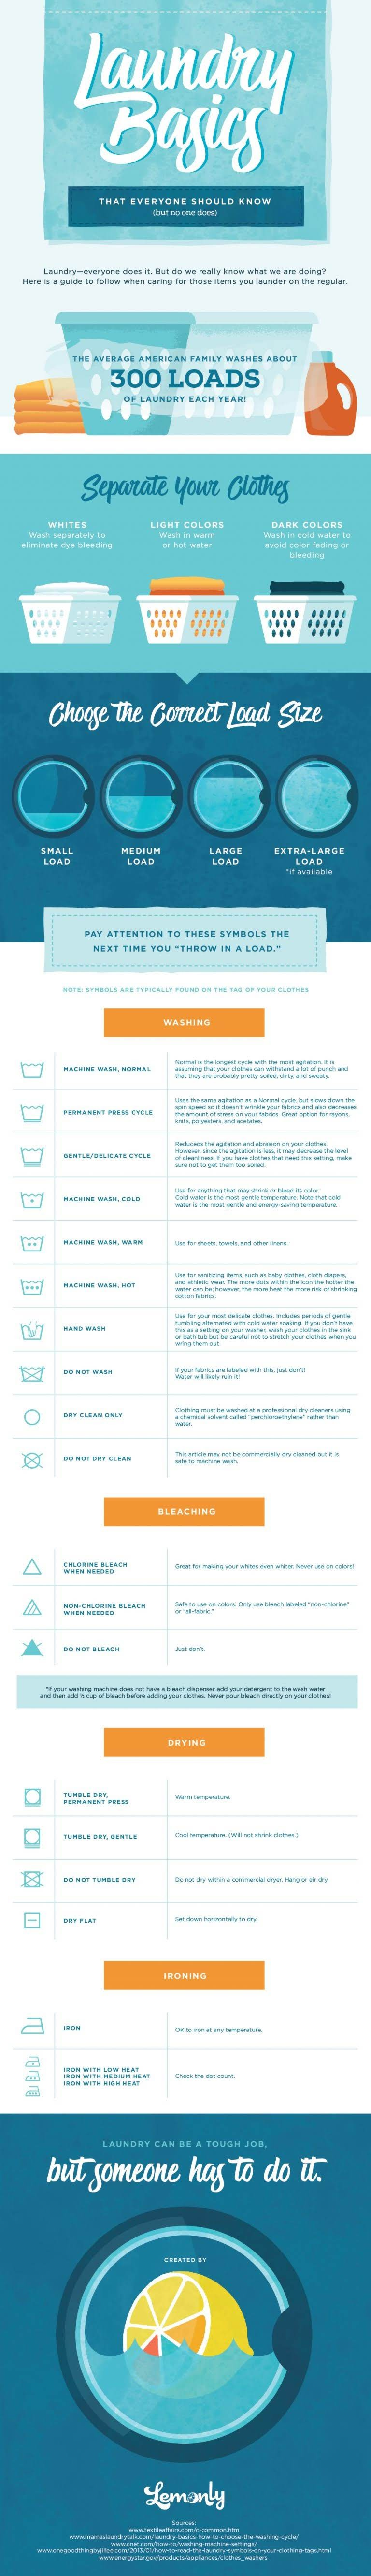 Laundry Basics #Infographic